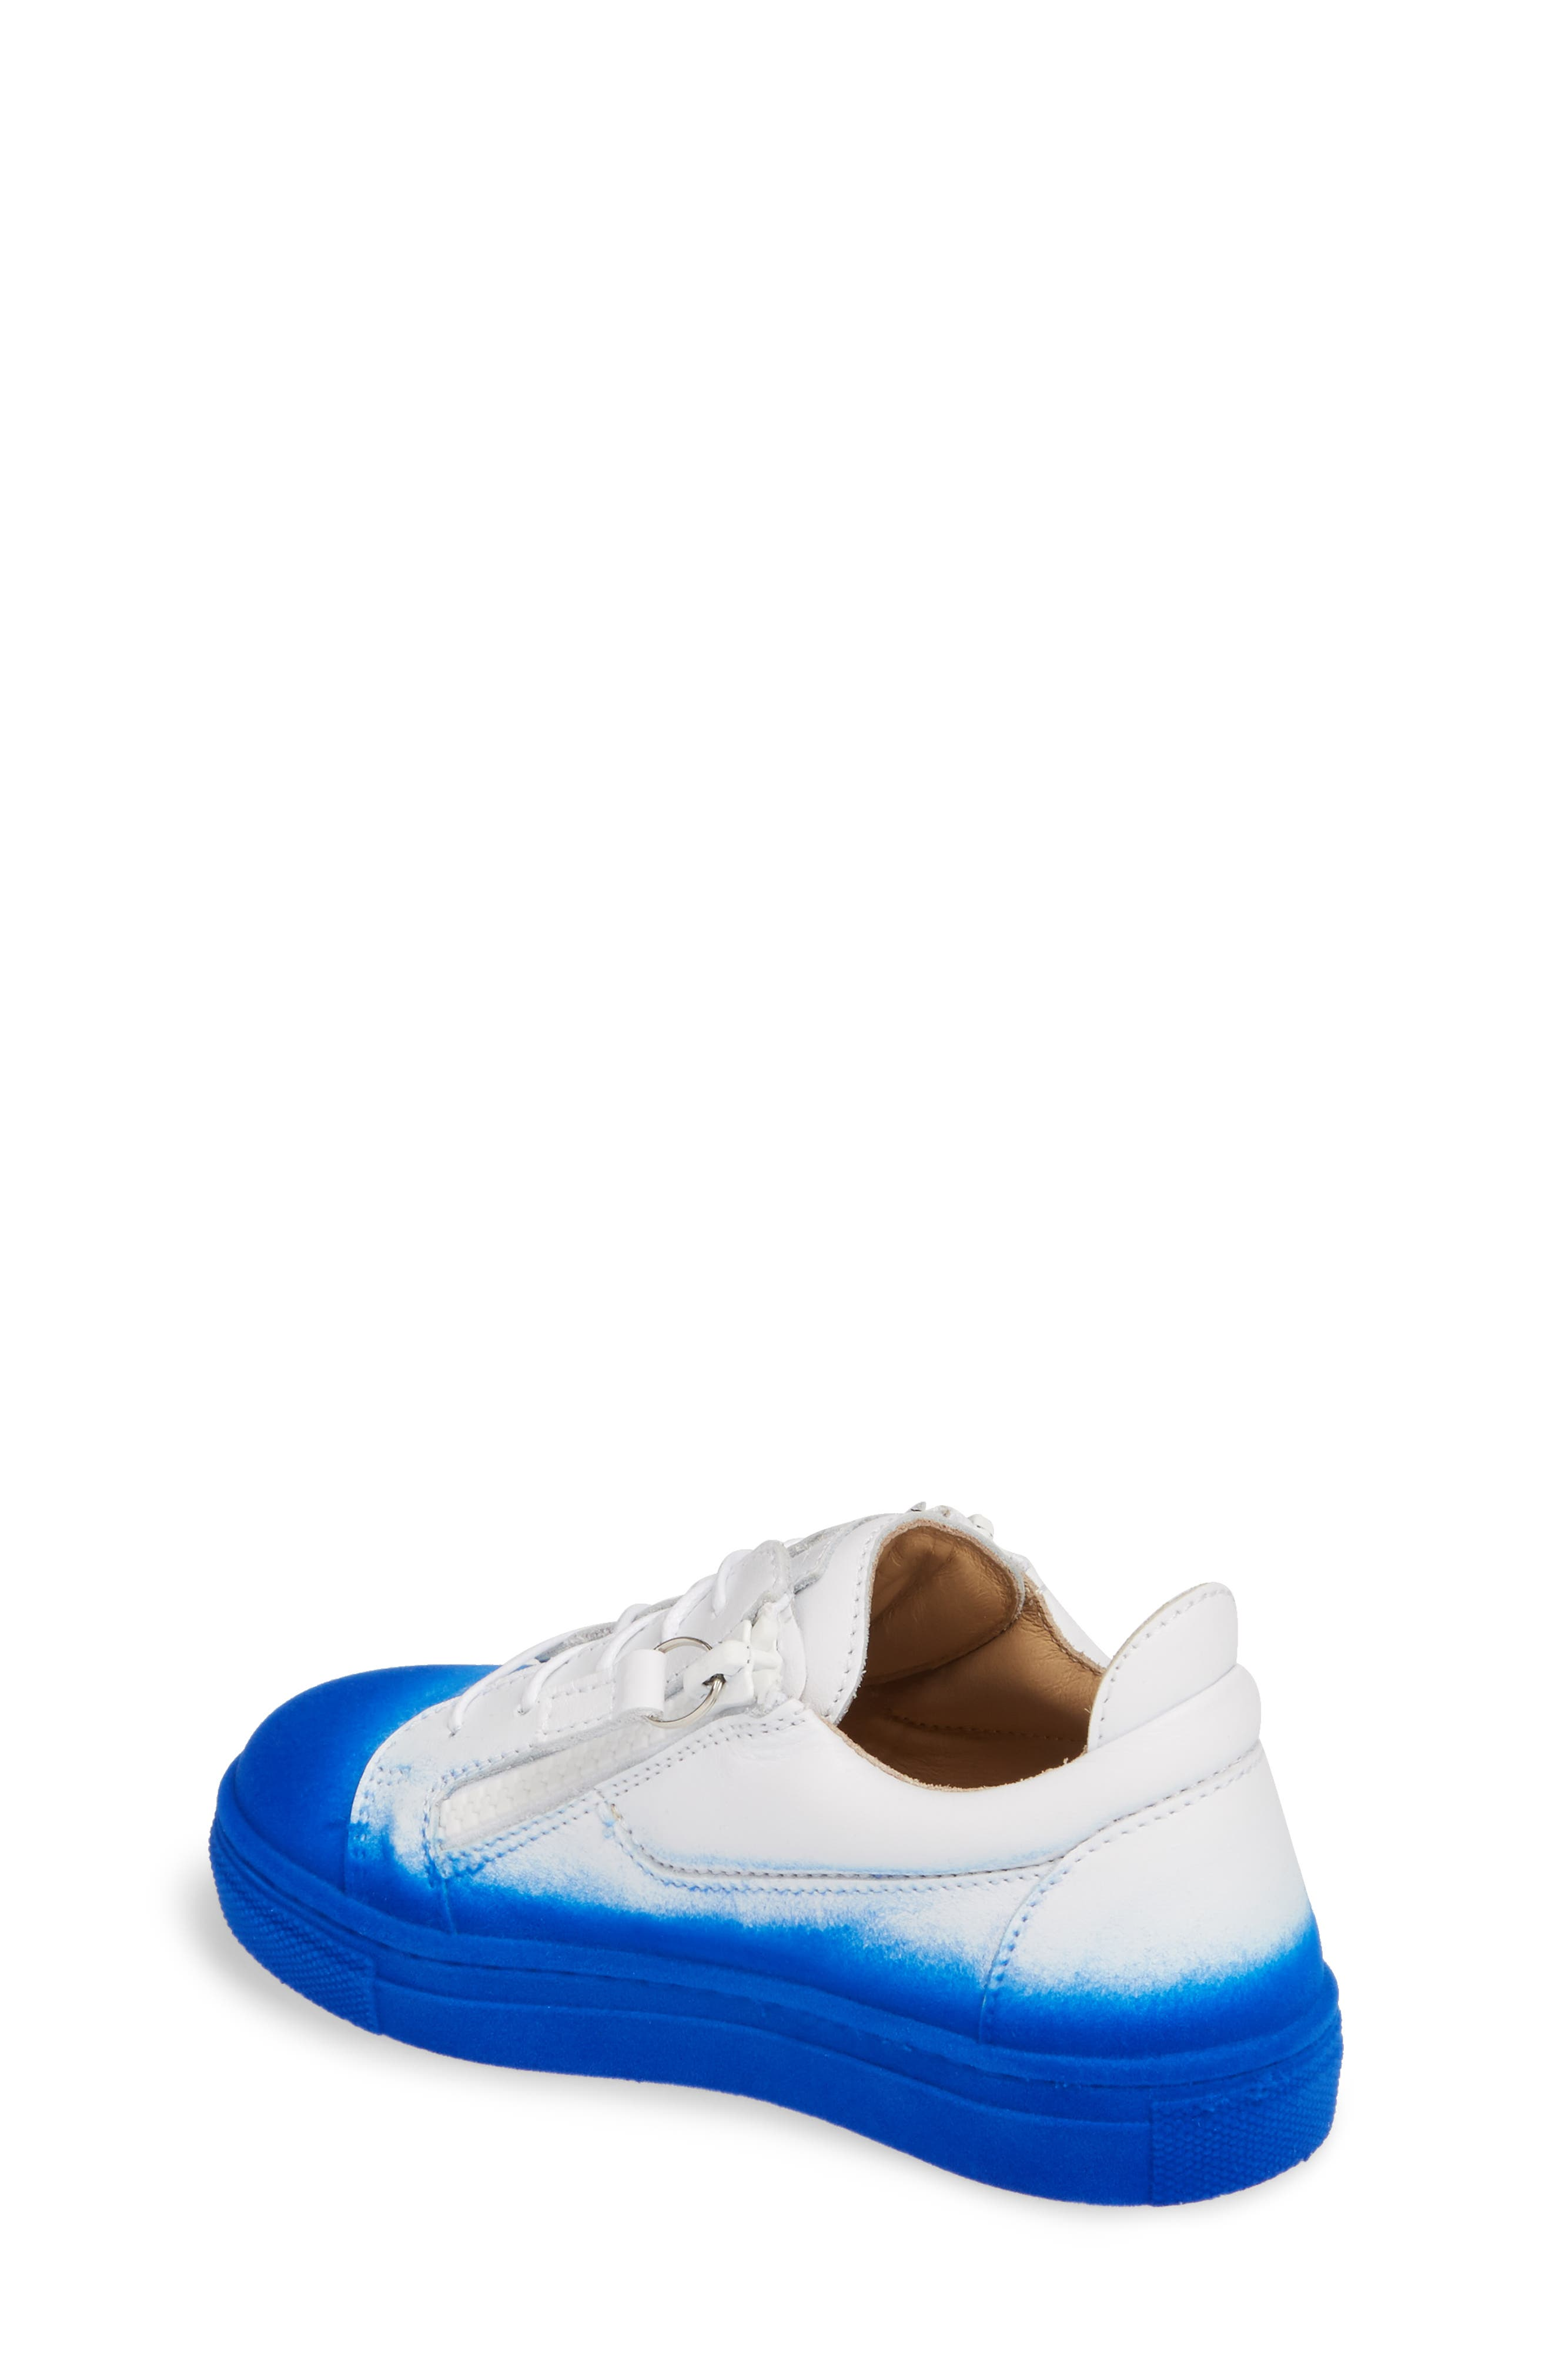 Smuggy Ombré Flocked Sneaker,                             Alternate thumbnail 2, color,                             400